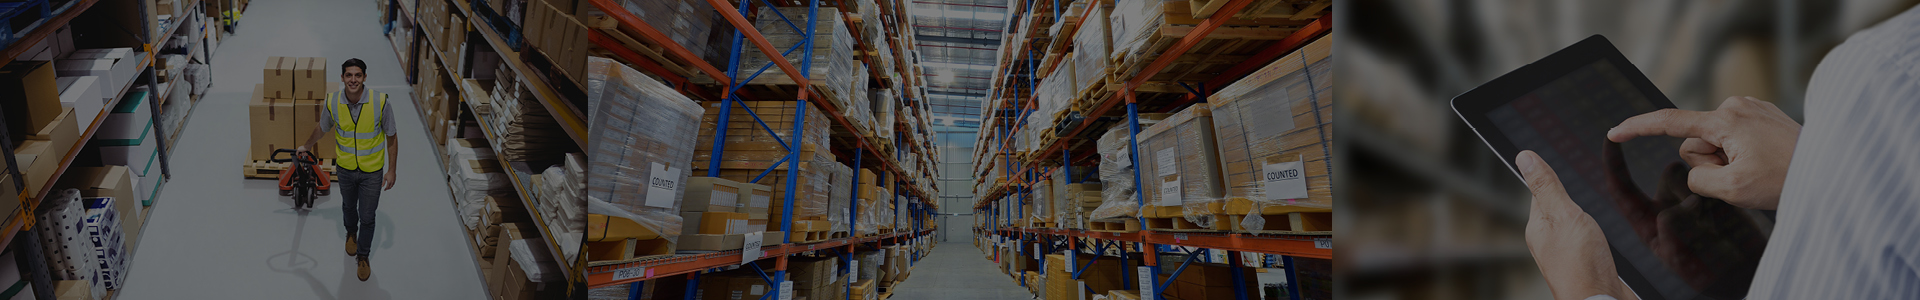 Warehousing, configuration, logistics